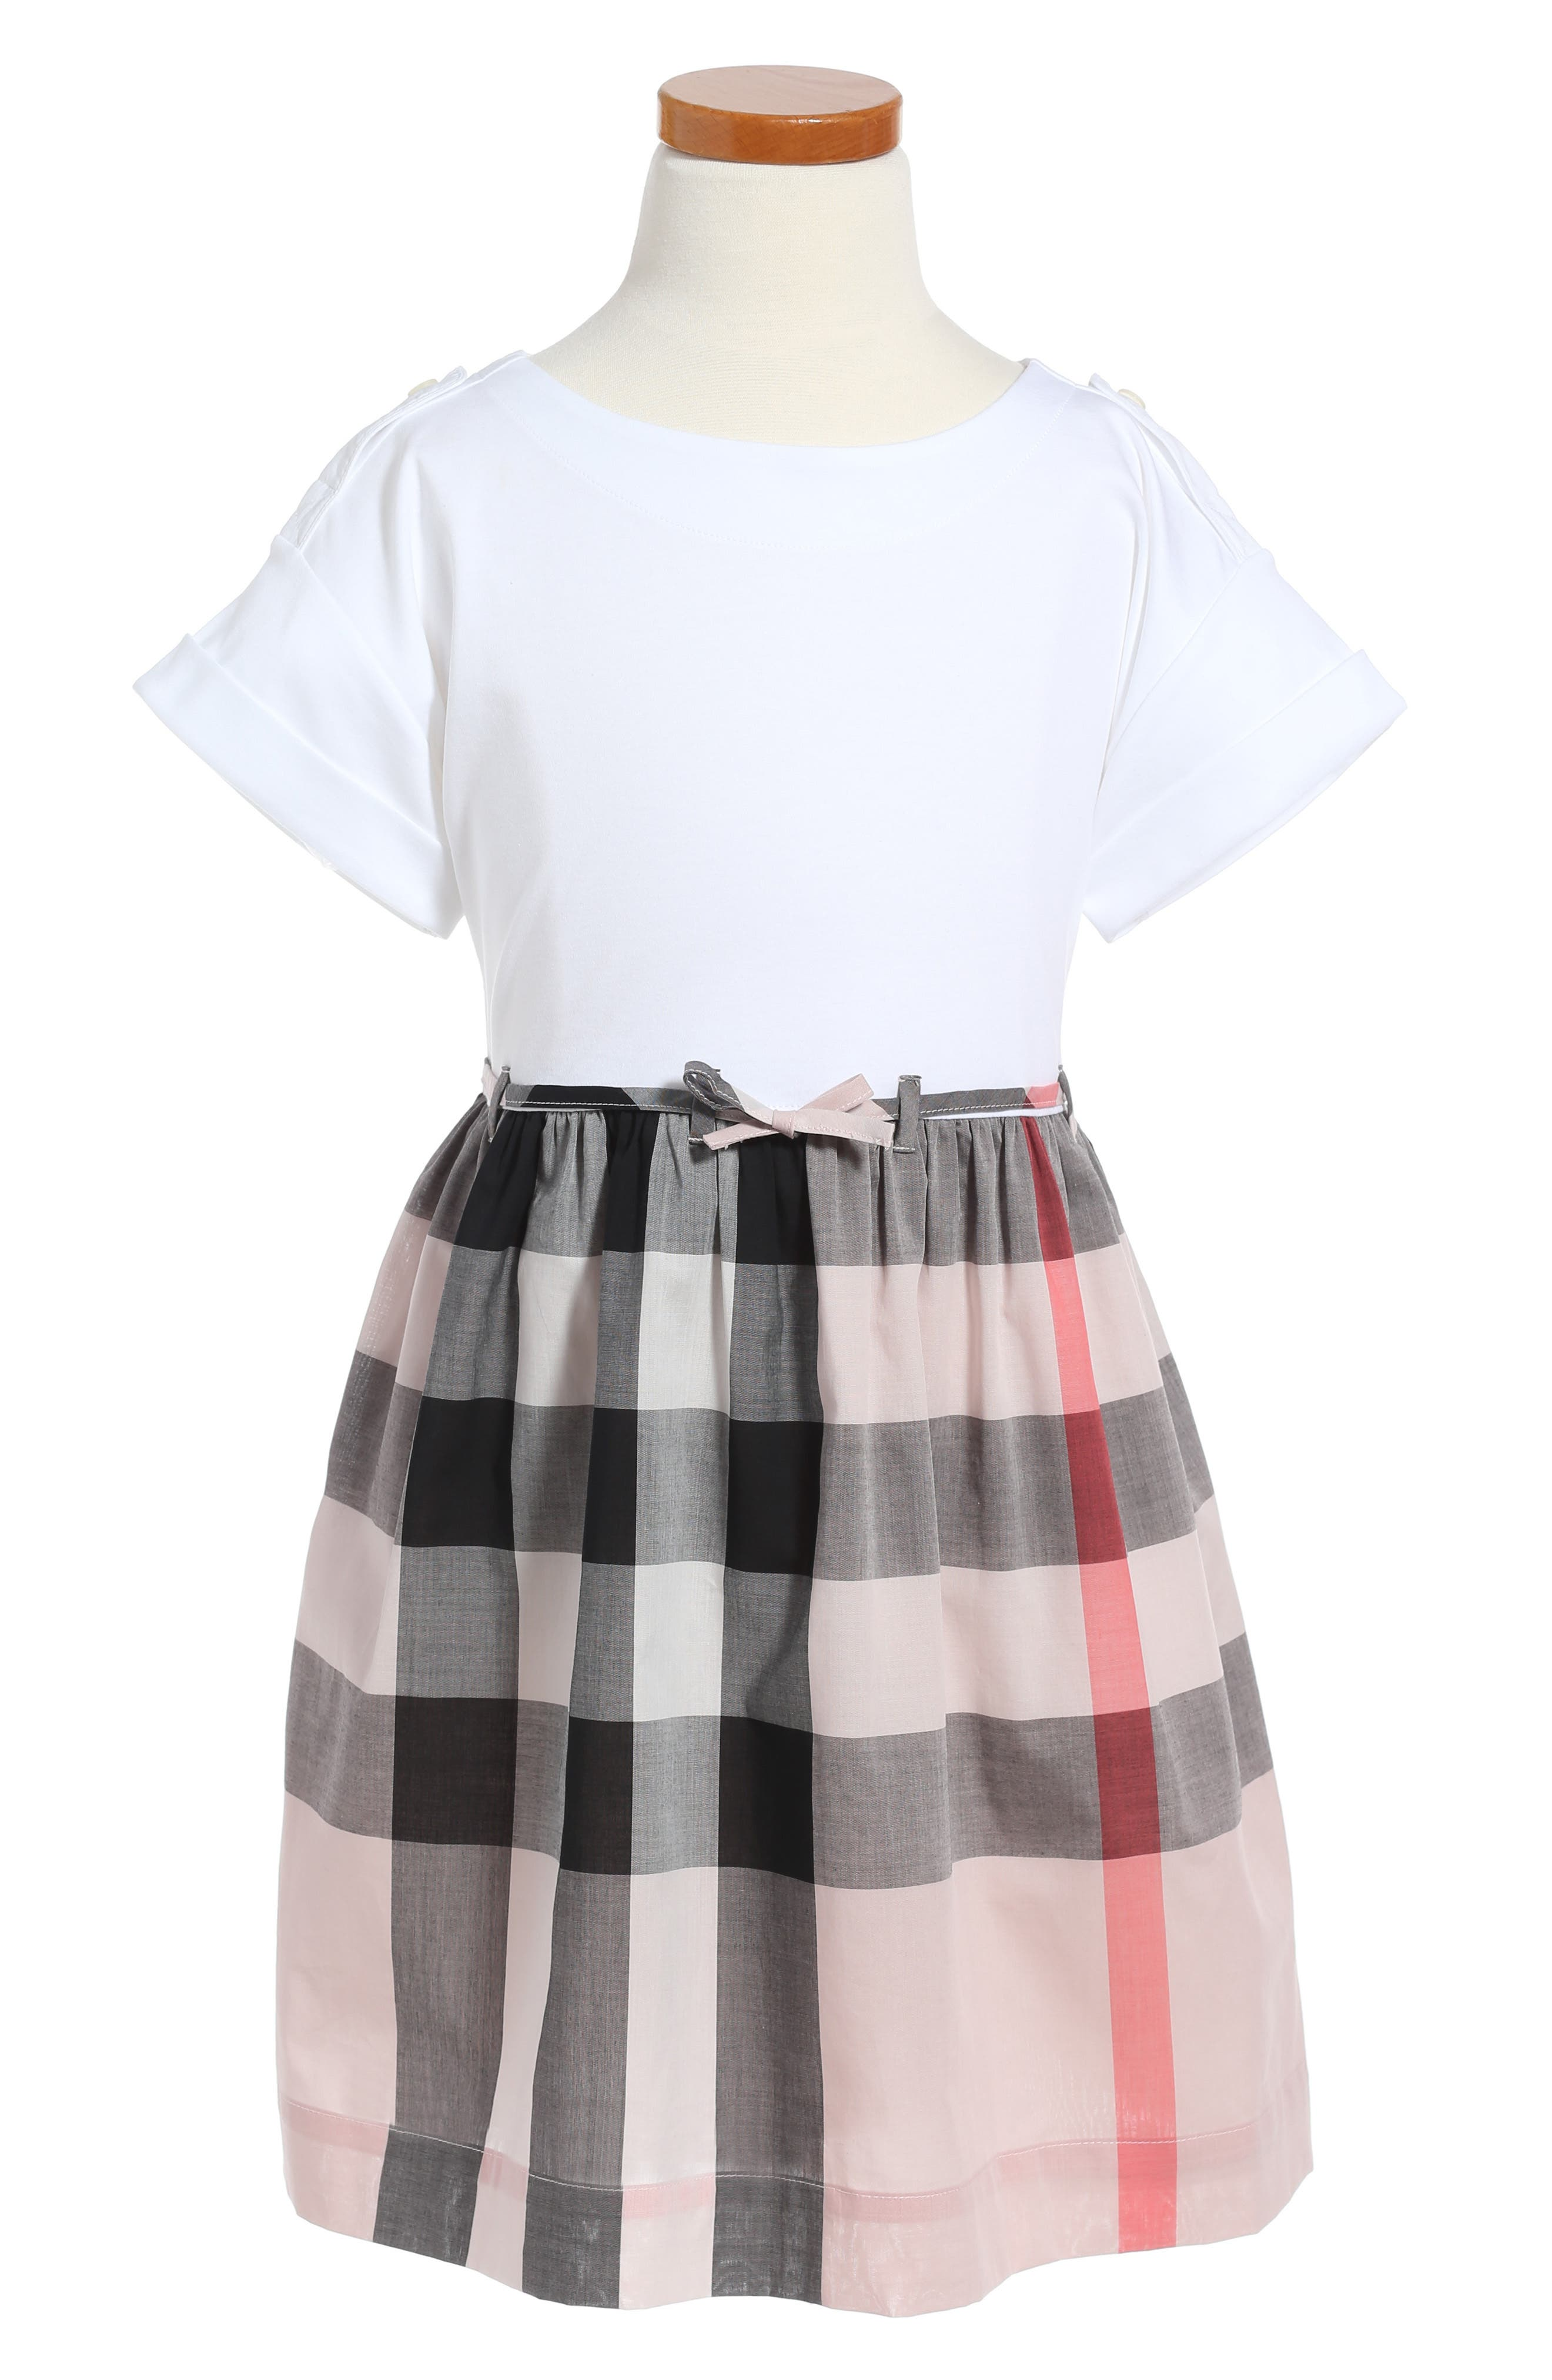 Alternate Image 1 Selected - Burberry Rhonda Dress (Little Girls & Big Girls)